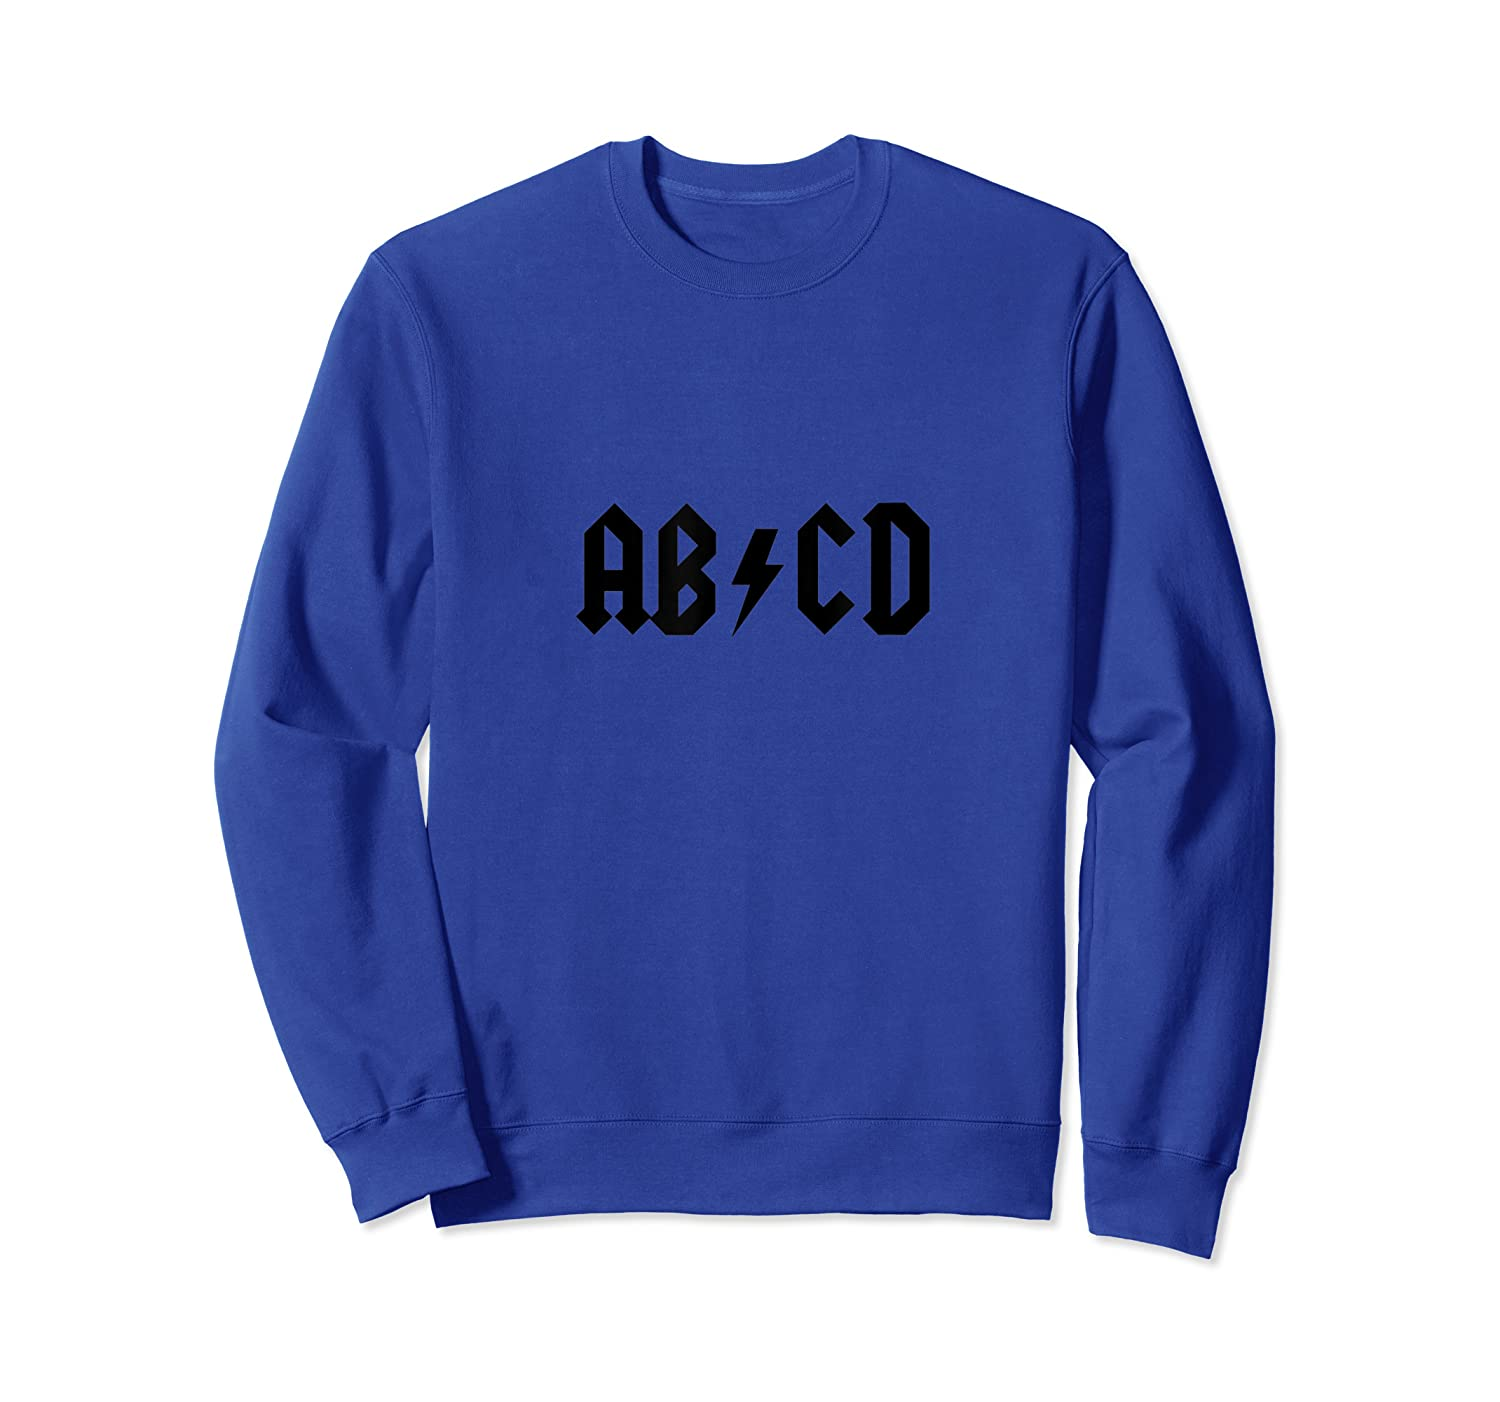 Ab/cd Tea Funny Rock And Roll Gift Ts Shirts Crewneck Sweater